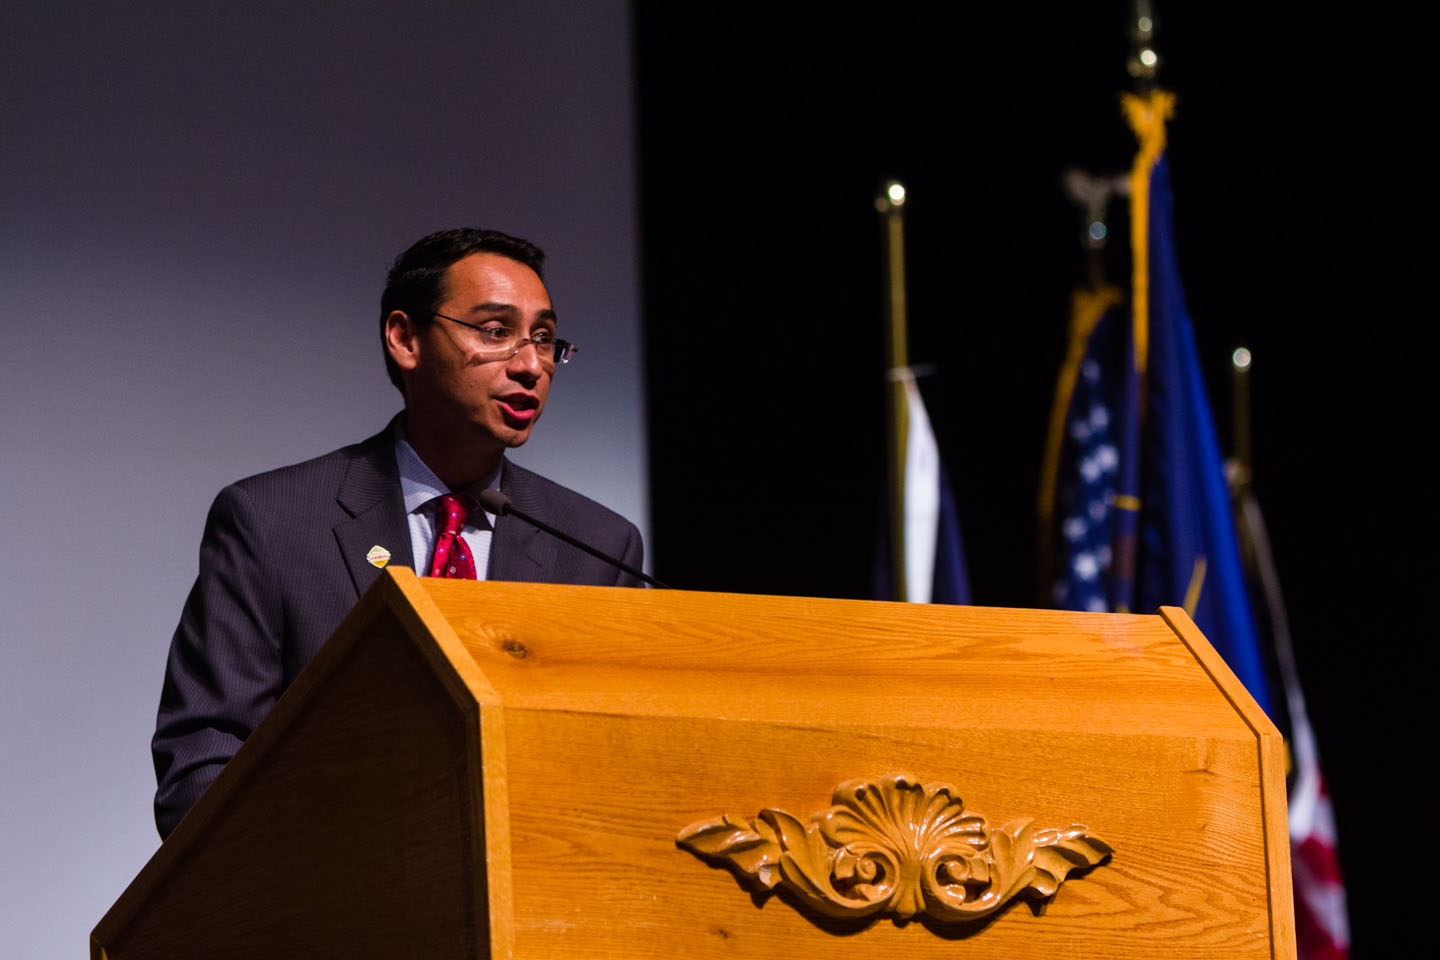 Ross Romero speaks to the Convention